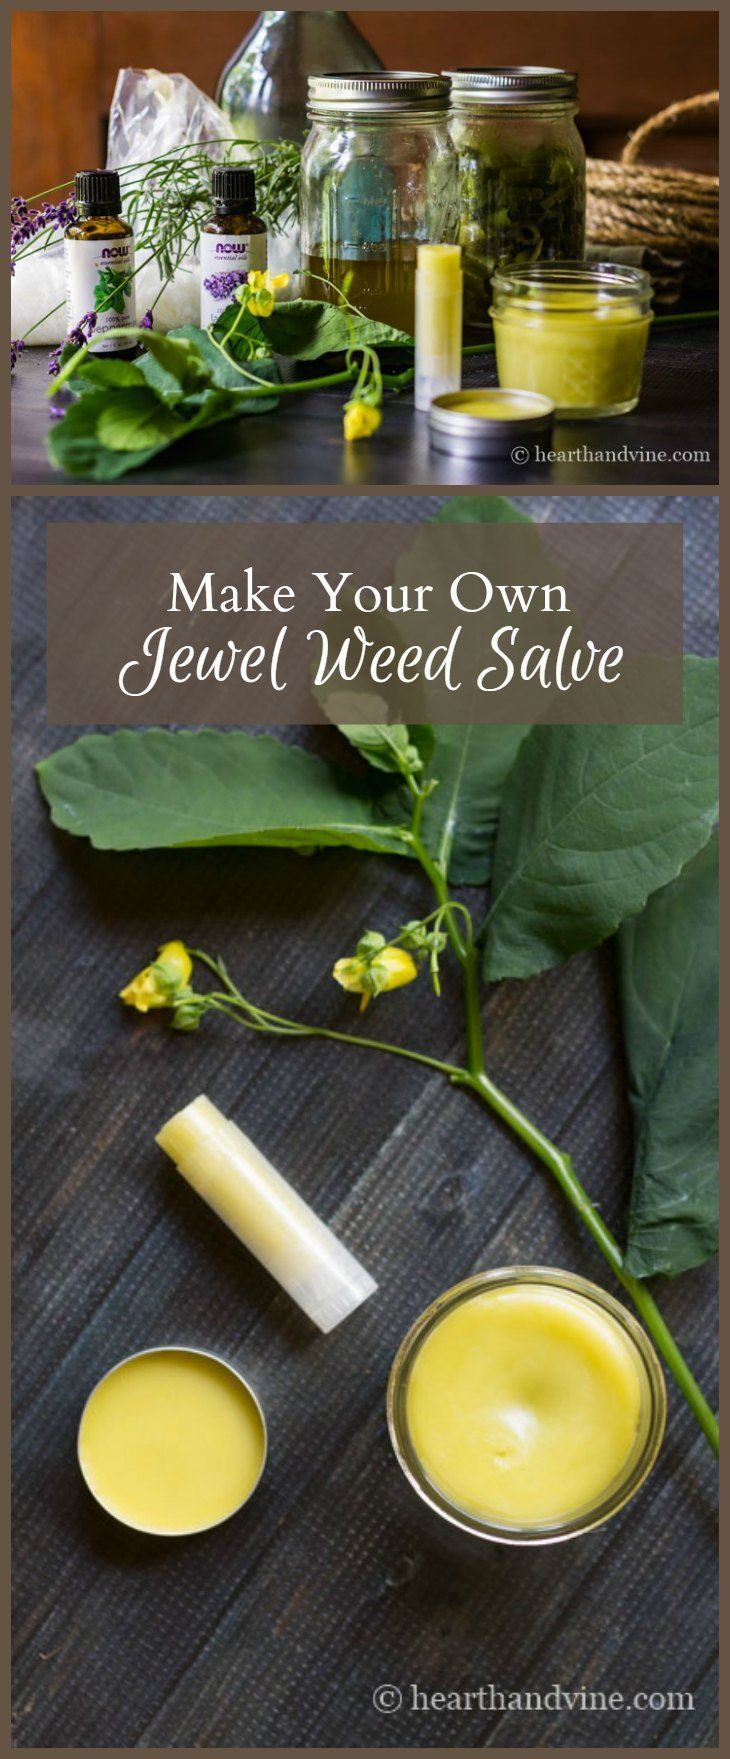 Jewelweed sap is said to aid irritated skin from poison ivy and bug bites. Learn how easy it is to make a salve with this helpful plant.